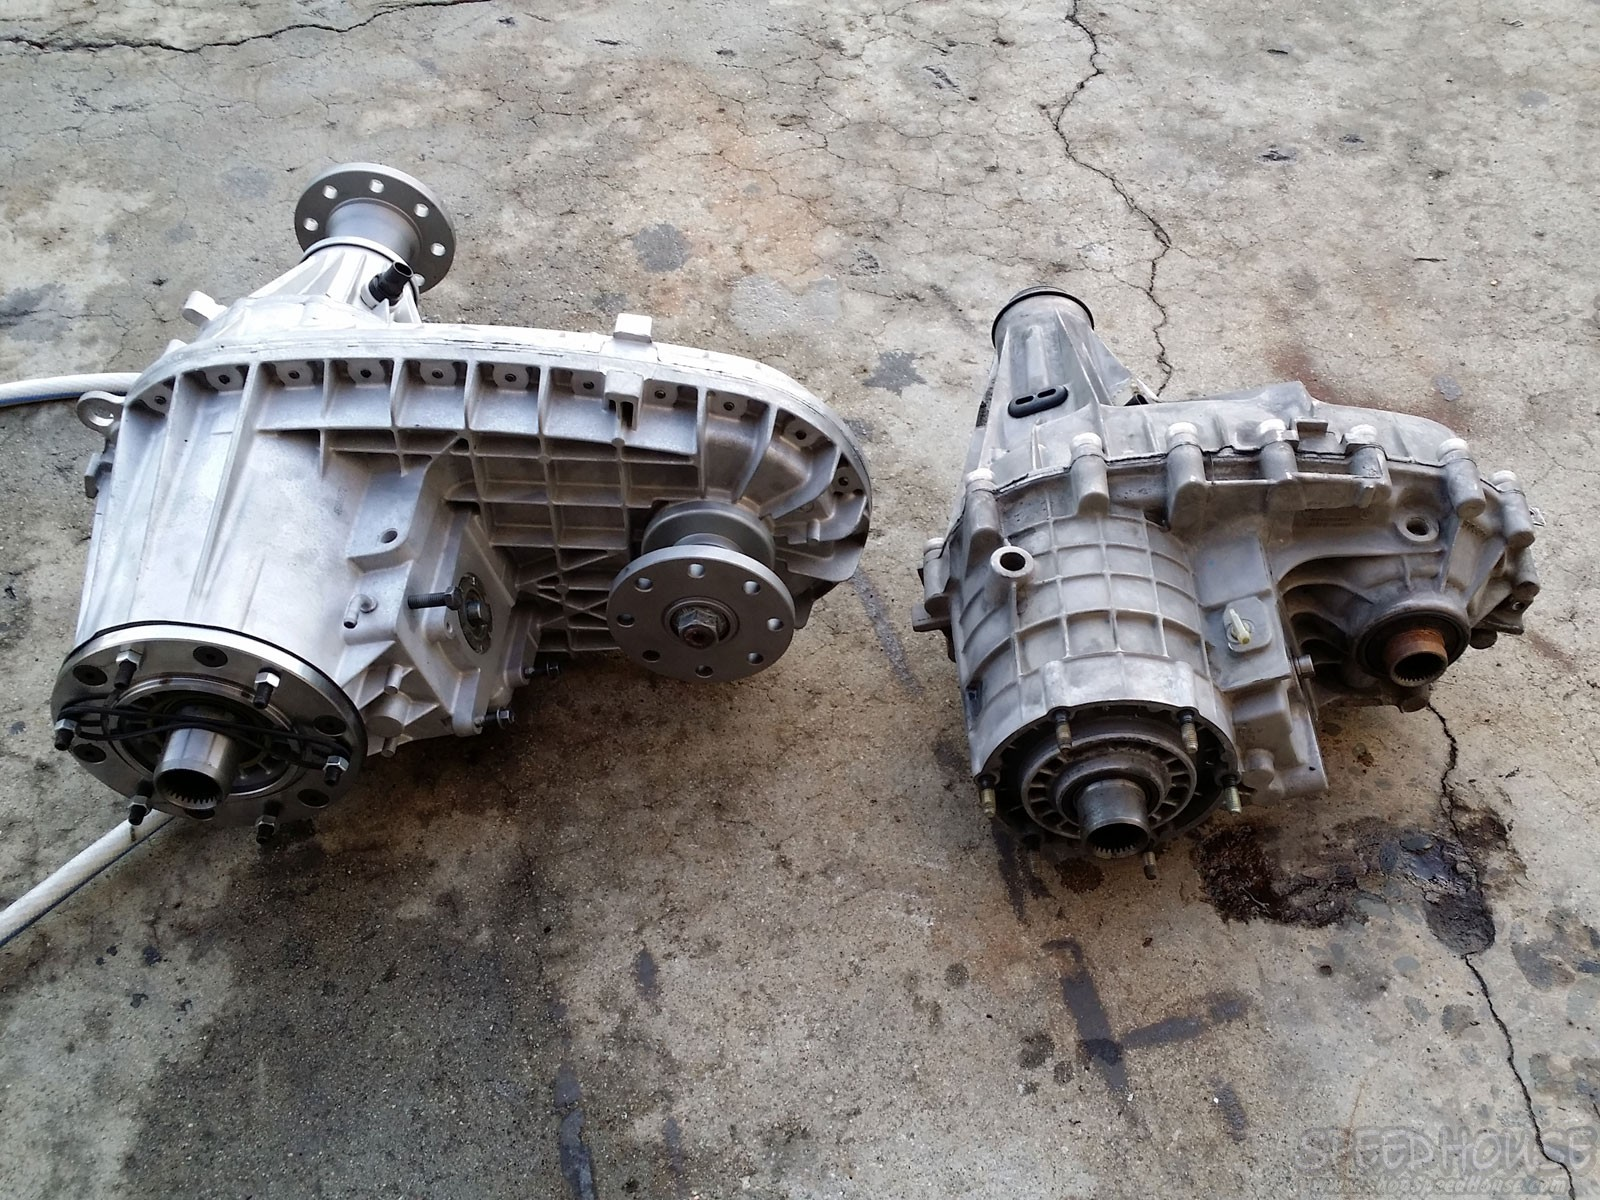 hight resolution of  duramax transfer case nv273 conversion vs nv263xhd comparison